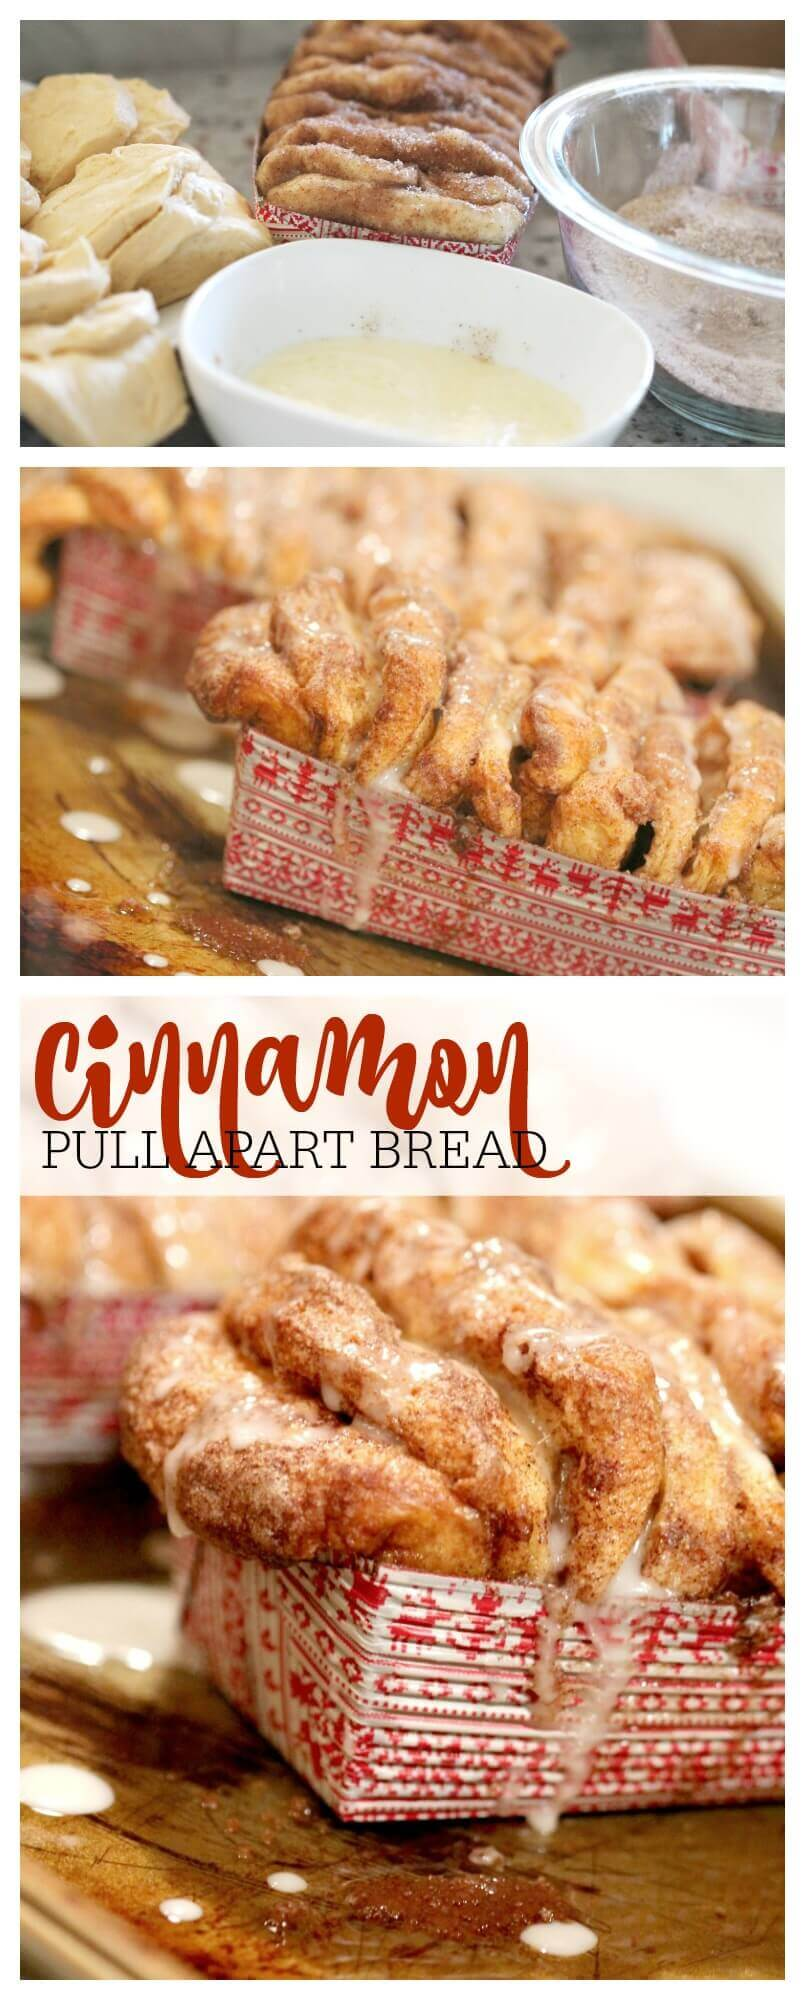 cinnamon pull apart bread featured